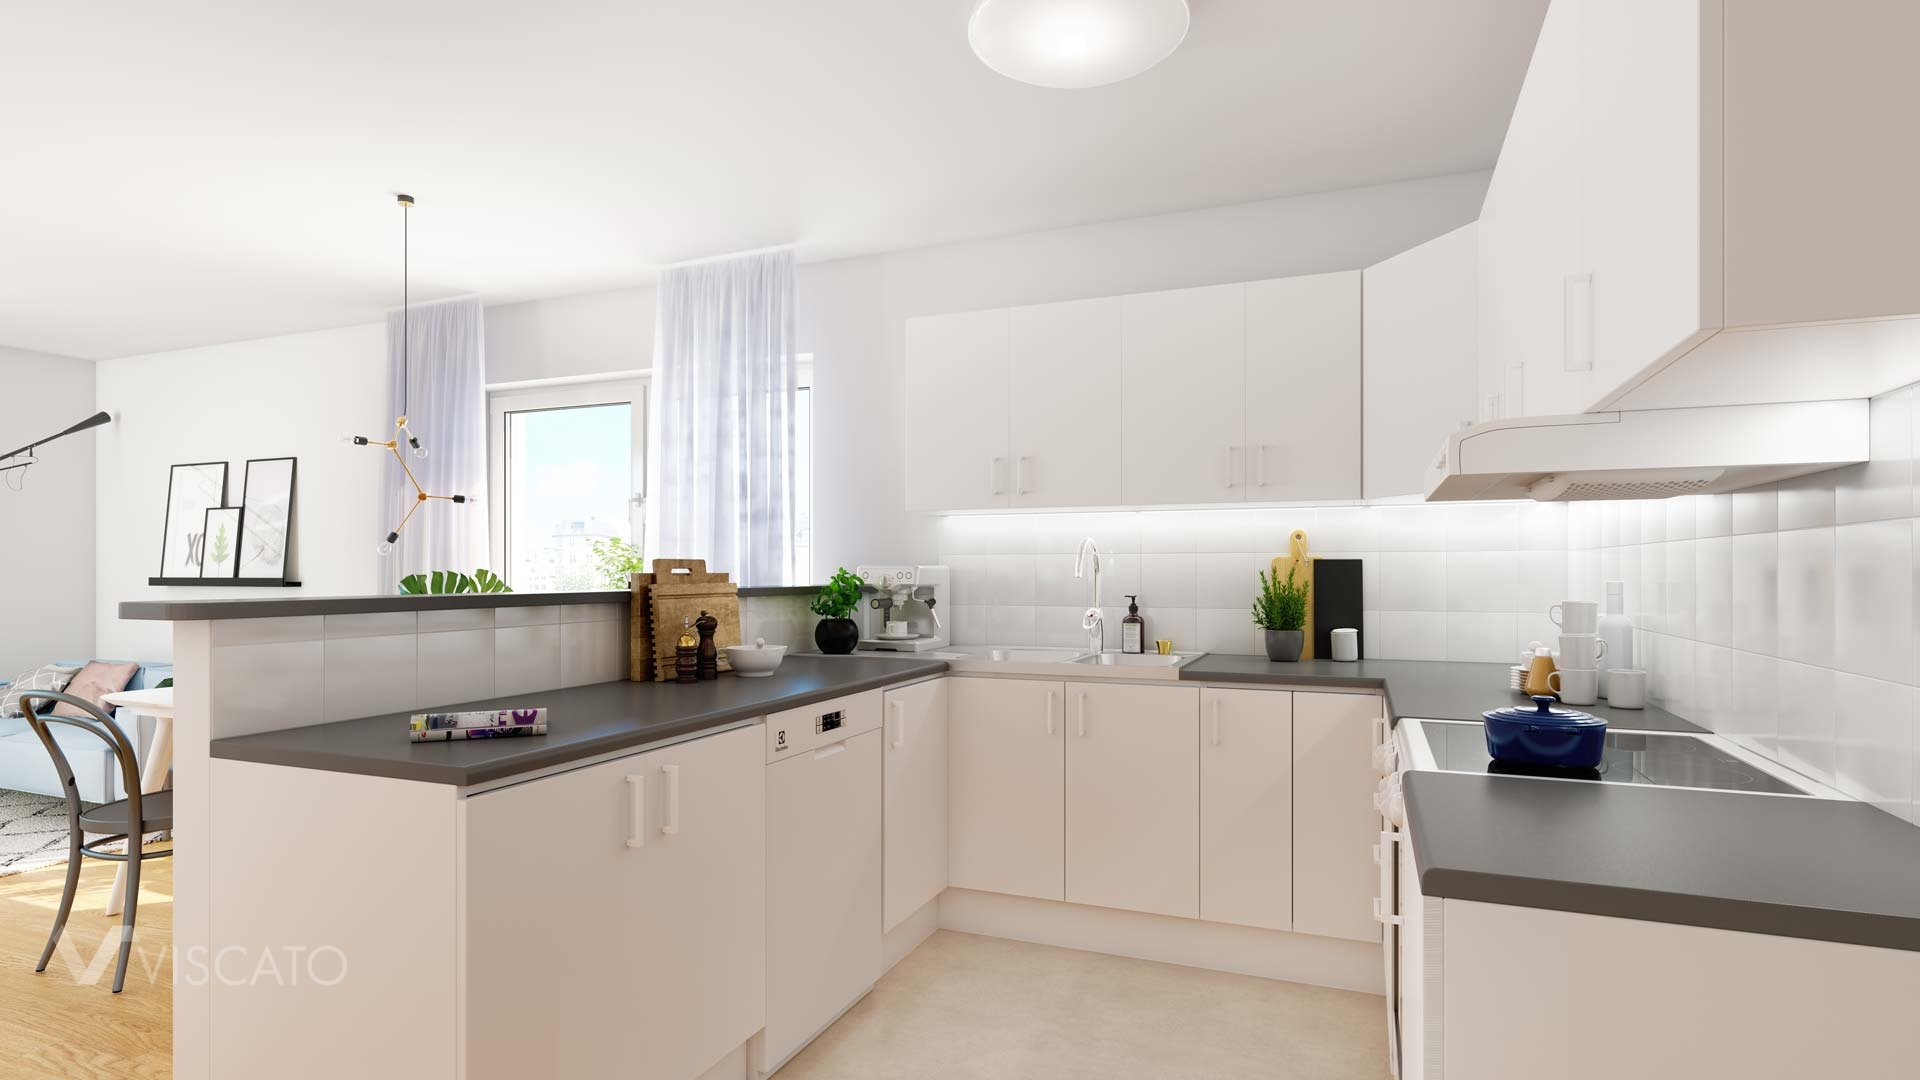 Scandinavian style white kitchen- Viscato 3D visualization